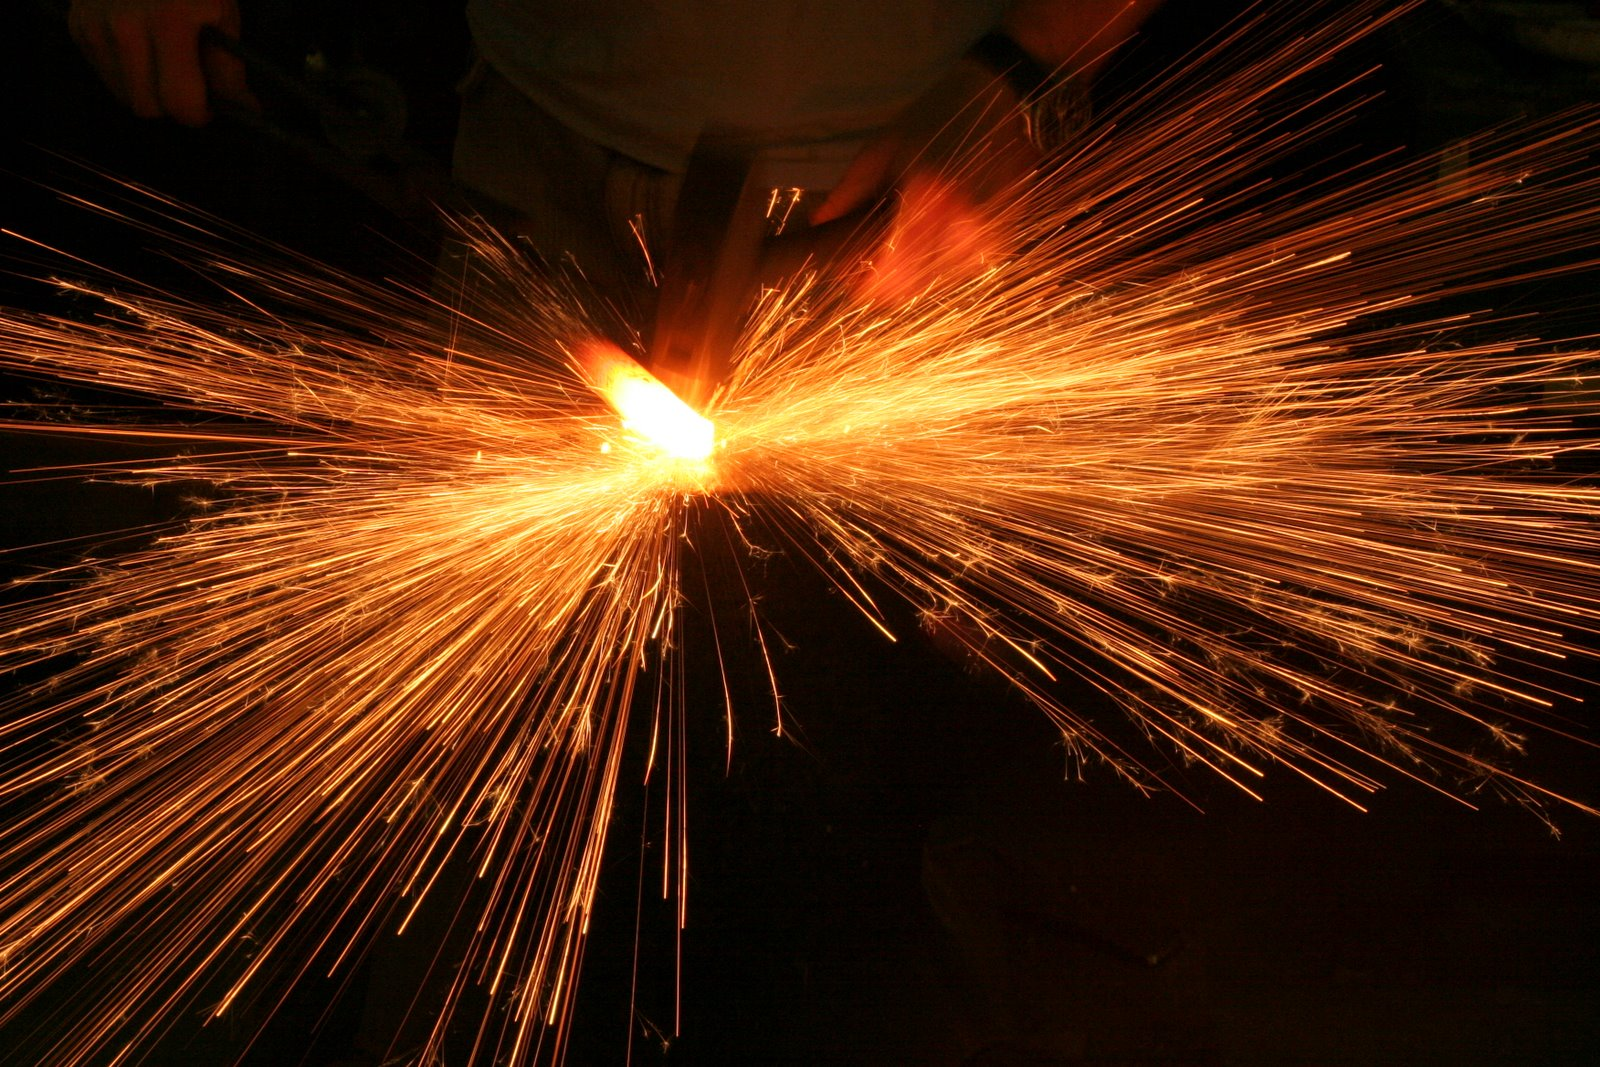 Fire Hammer Anvil Sparks